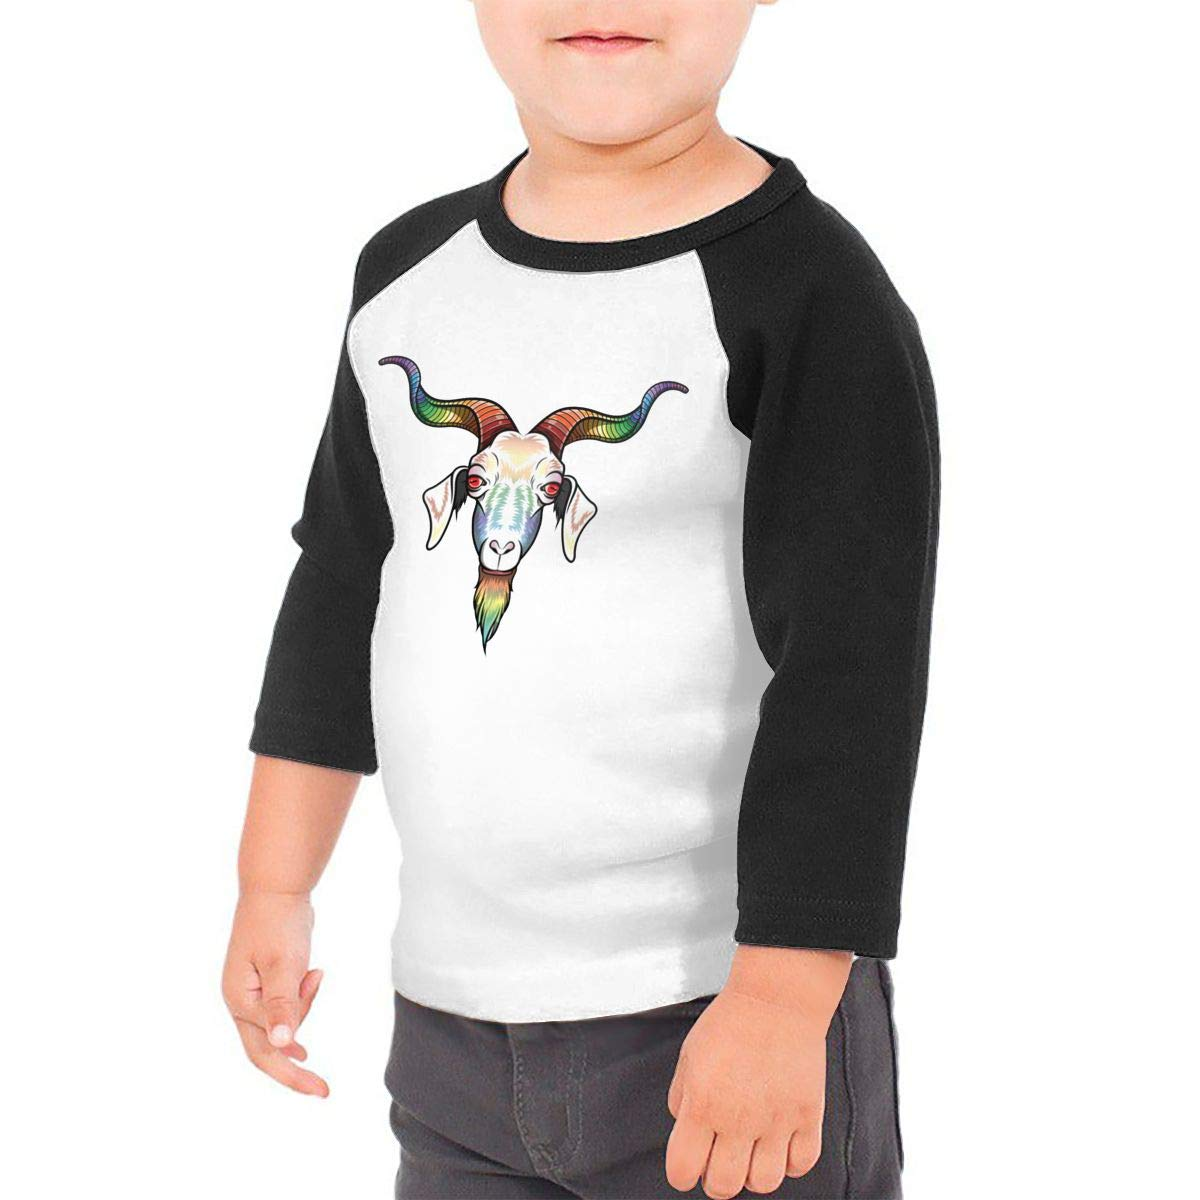 Rainbow Goat 1 Unisex Toddler Baseball Jersey Contrast 3//4 Sleeves Tee